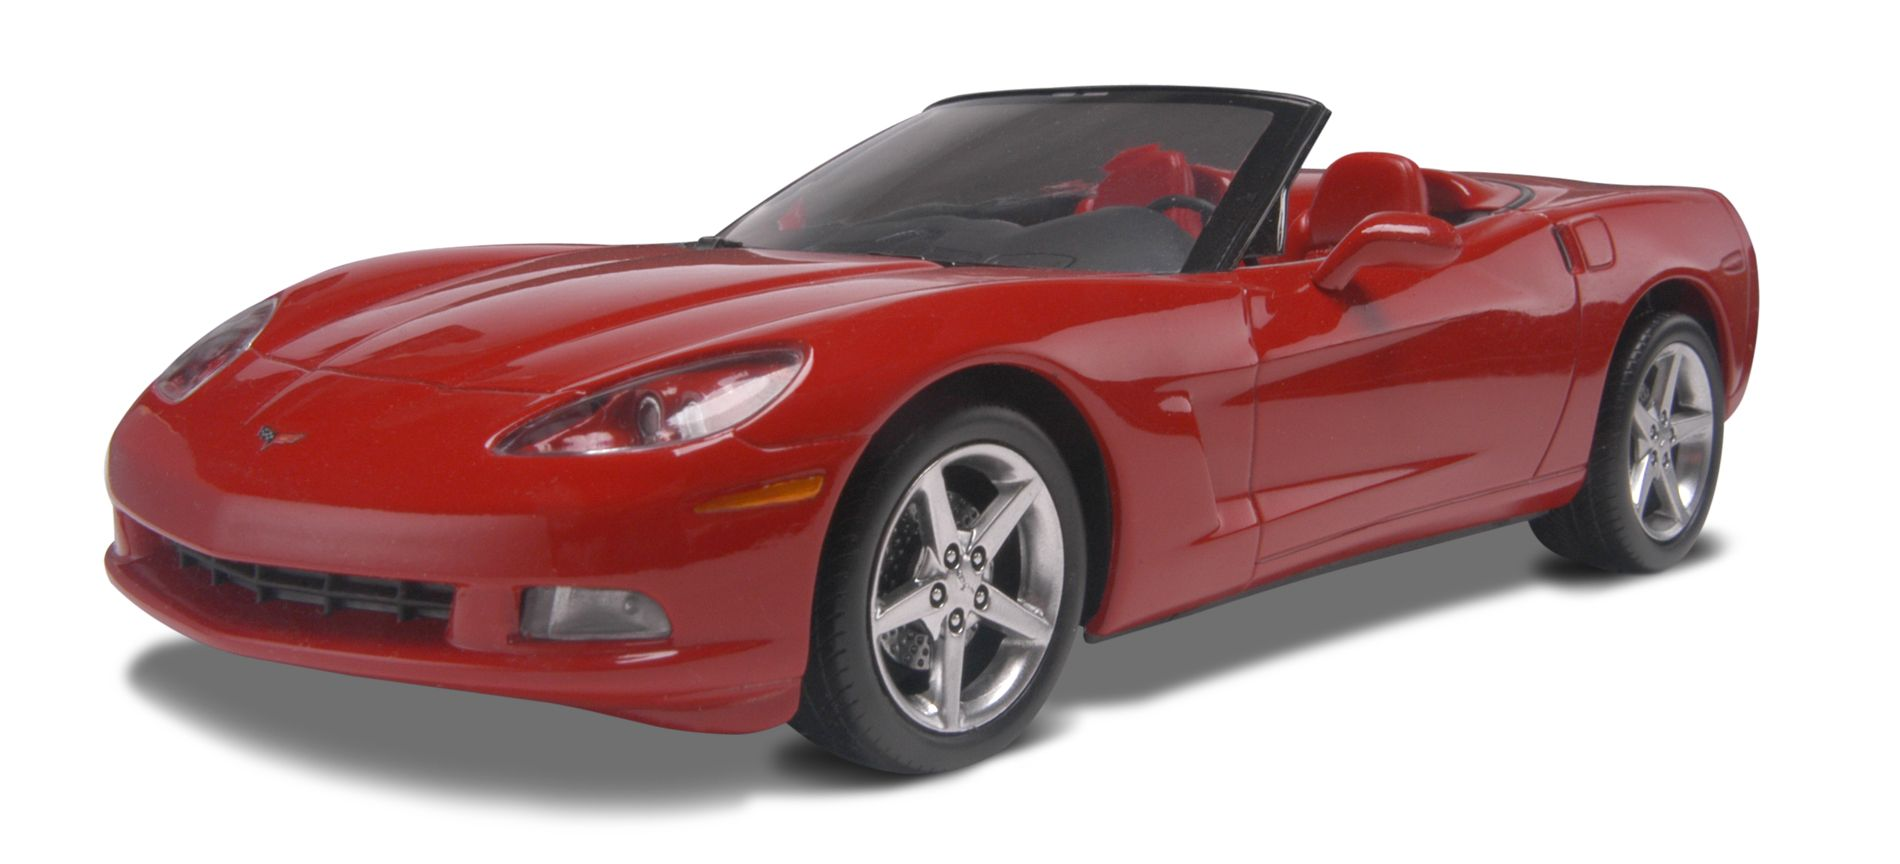 Hot Wheels 1 25 05 Corvette Convertible Plastic Model Kit